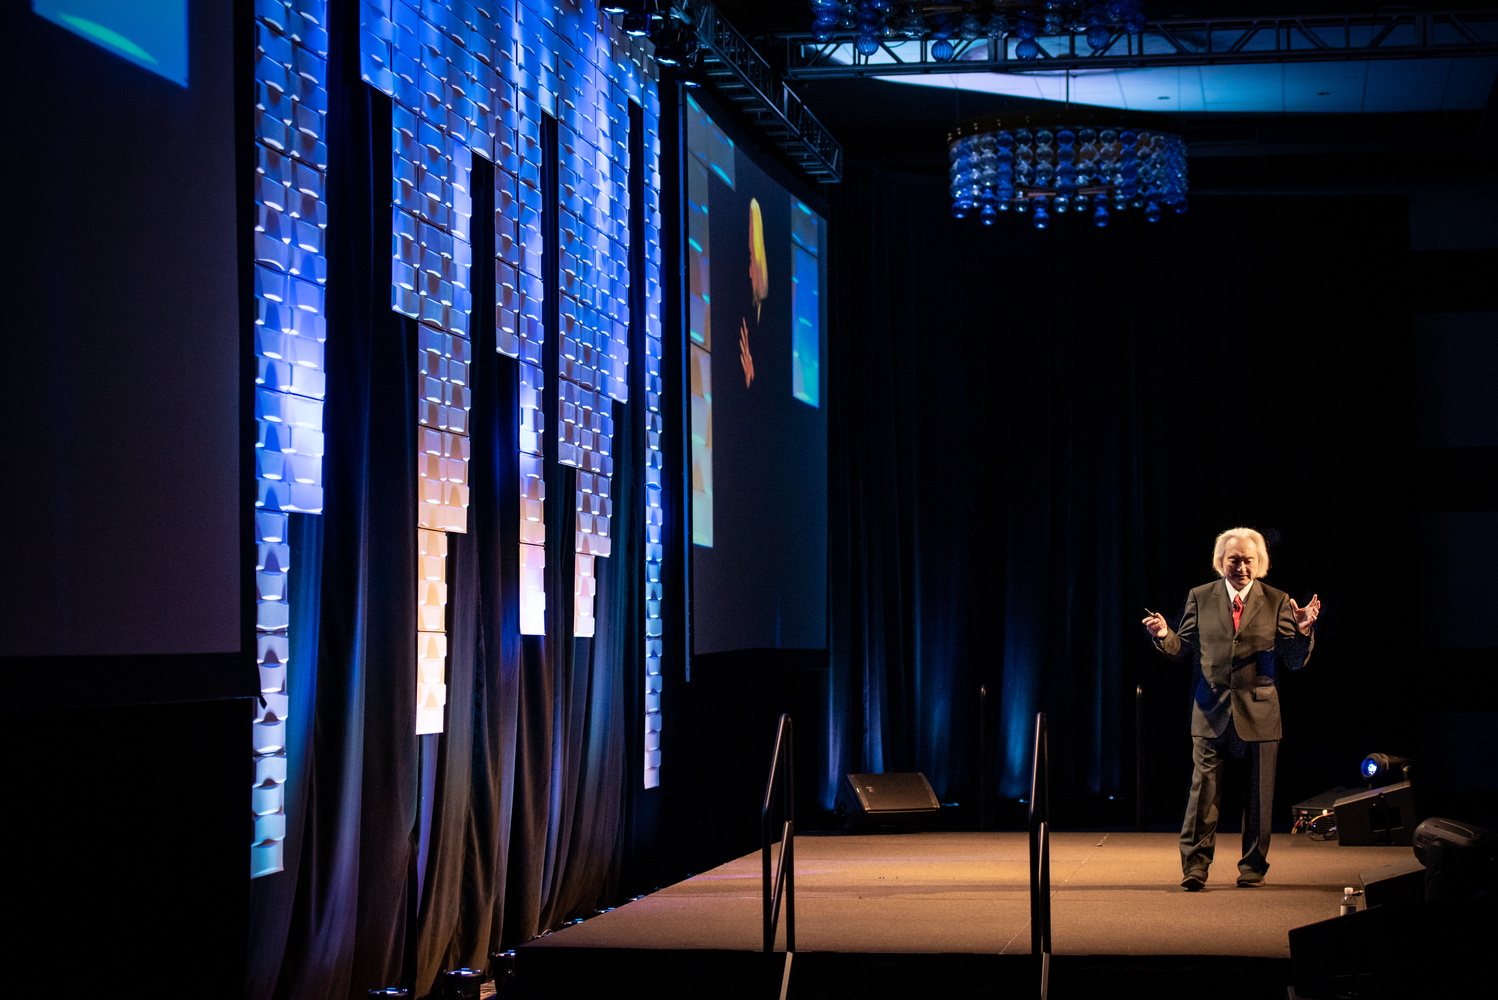 Michio Kaku delivers a speech on stage